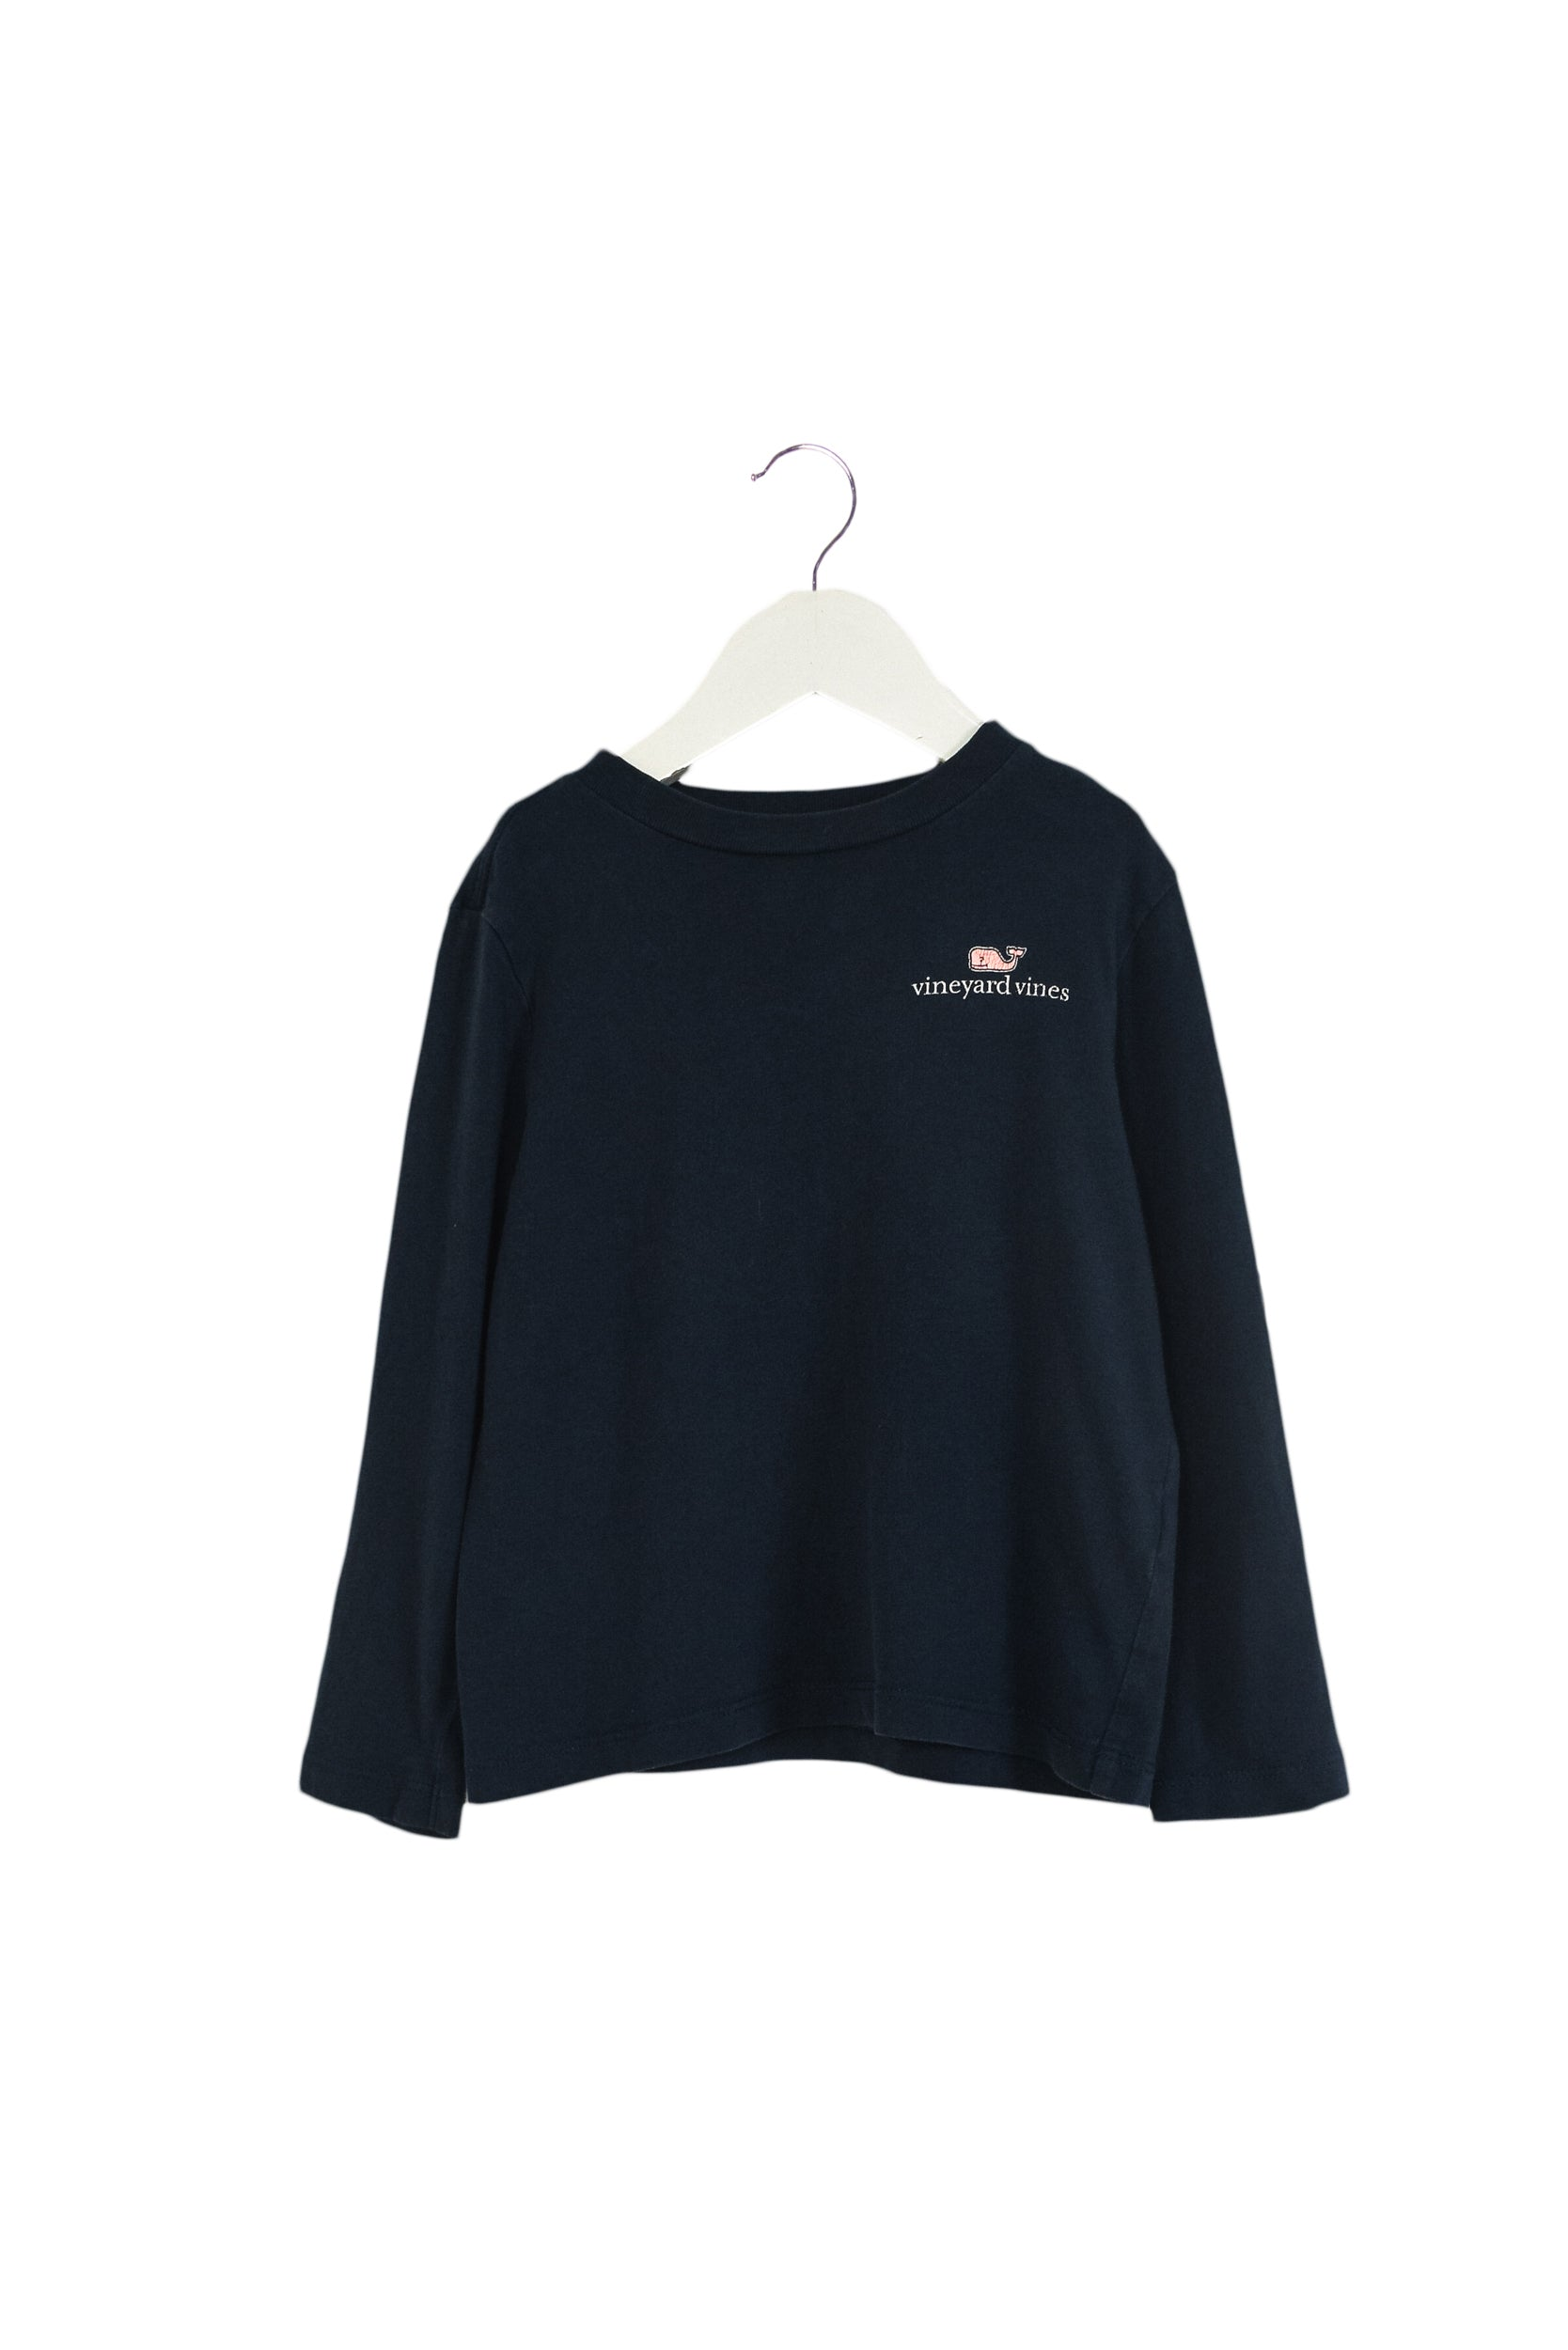 Long Sleeve Top 3T at Retykle